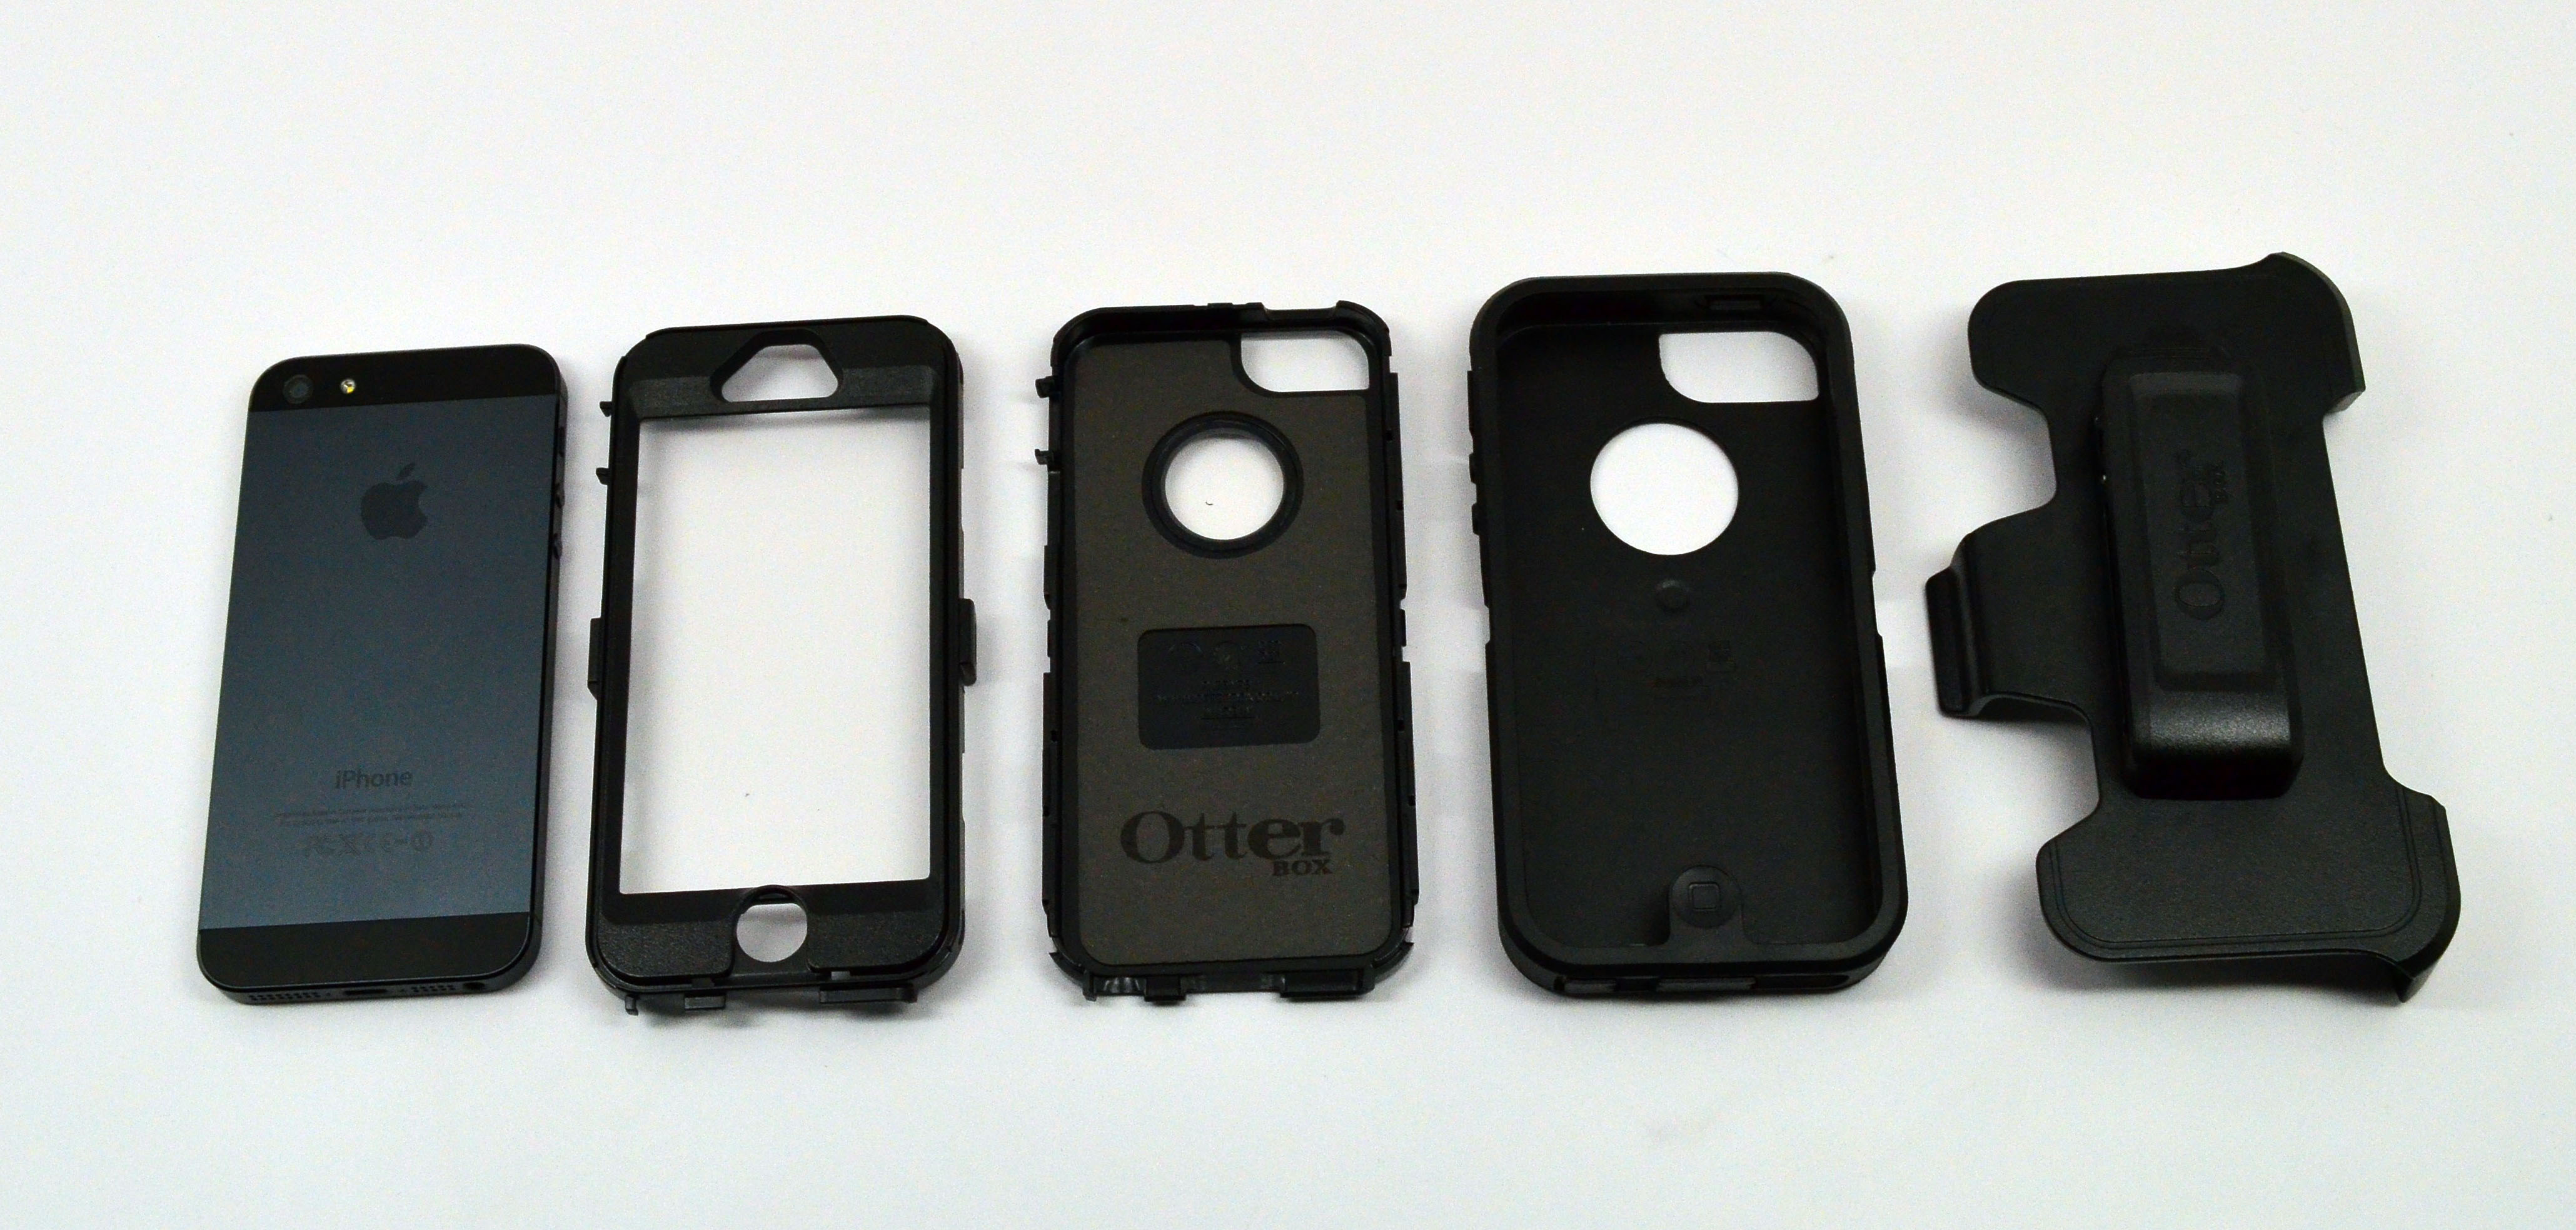 Otterbox Cover Iphone S